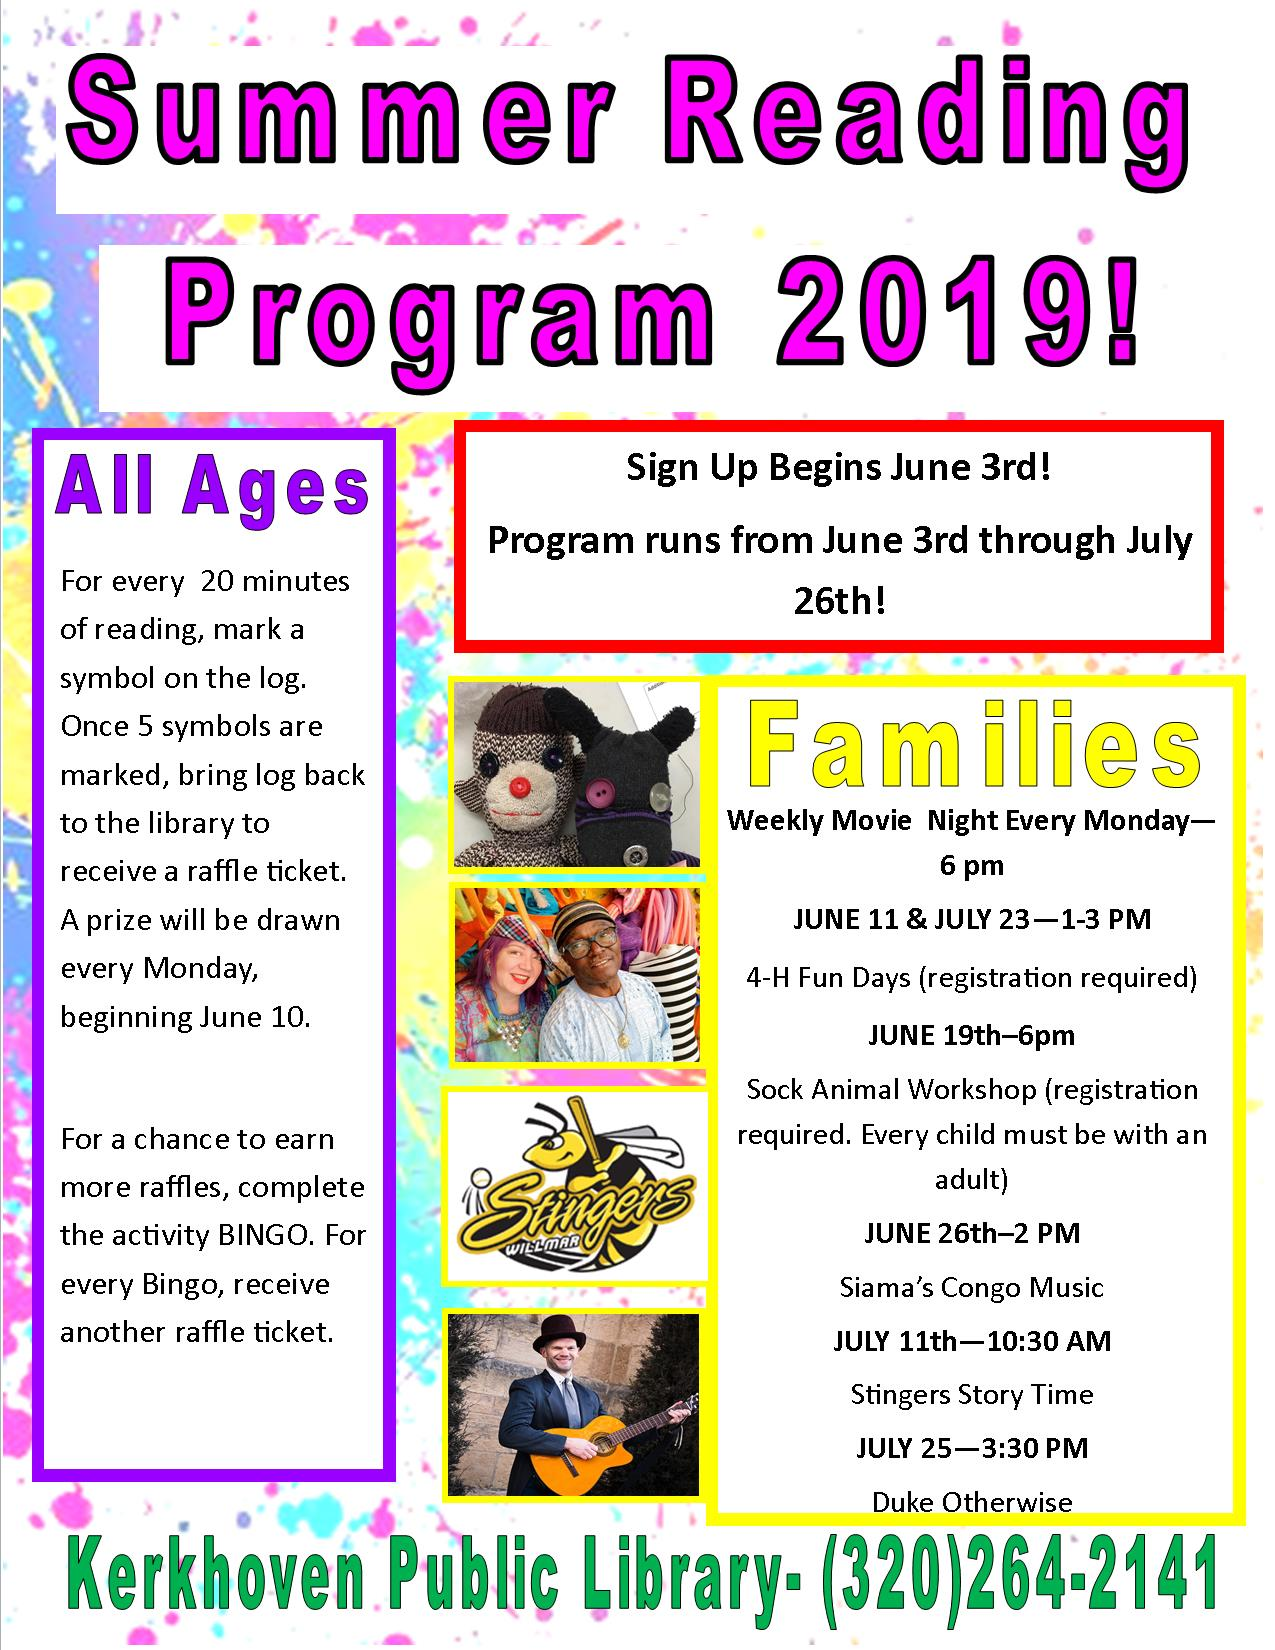 Our Summer Reading Program runs from June 3 through July 26. Major activities include 4-H Fun Days, Sock Animal Creations, Siama's Congo Music, Story-time with the Stingers, and Duke Otherwise. Contact the library for more details at 320-264-2141.